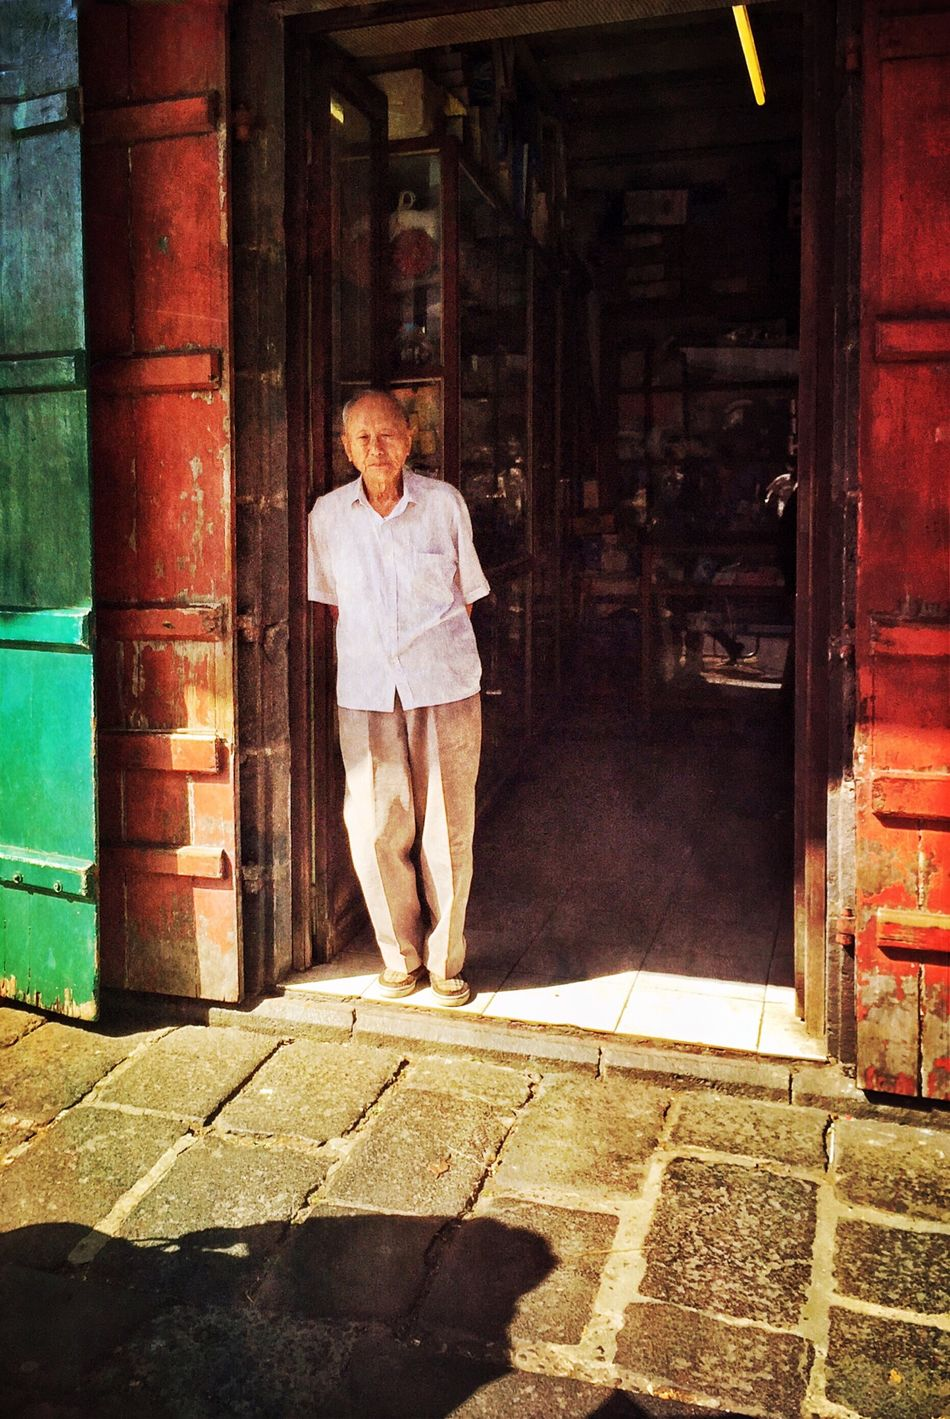 Catching the sun Streetphotography Streetphoto_color Chinese Door Sunlight Street Life Mauritius Light And Shadow